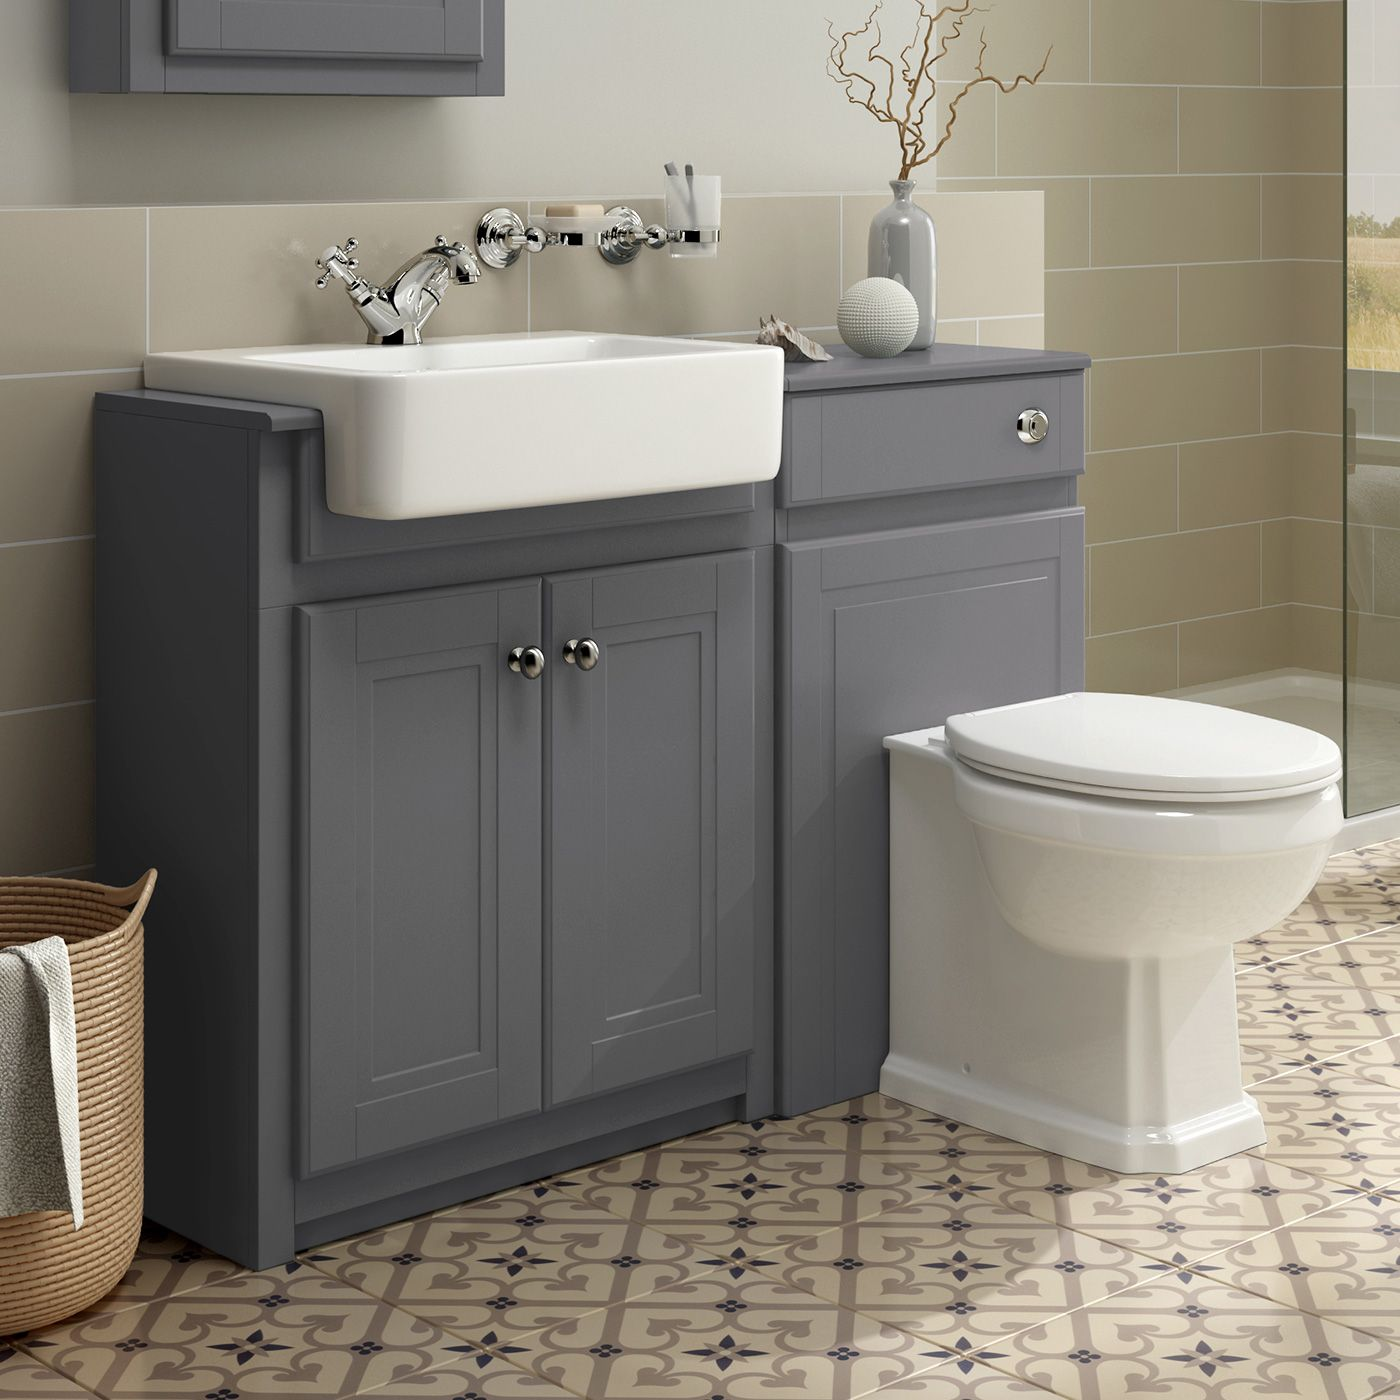 Image result for toilet vanity | Bathroom Decor | Pinterest | Toilet on mirrored furniture, bedroom furniture, basement furniture, showroom furniture, study space furniture, wine cabinets furniture, kitchen furniture, duvet furniture, antique furniture, bauhaus furniture, living room furniture, contemporary furniture, garden furniture, office furniture, bed furniture, wood floor furniture, home furniture, baby furniture, black furniture, wooden furniture,